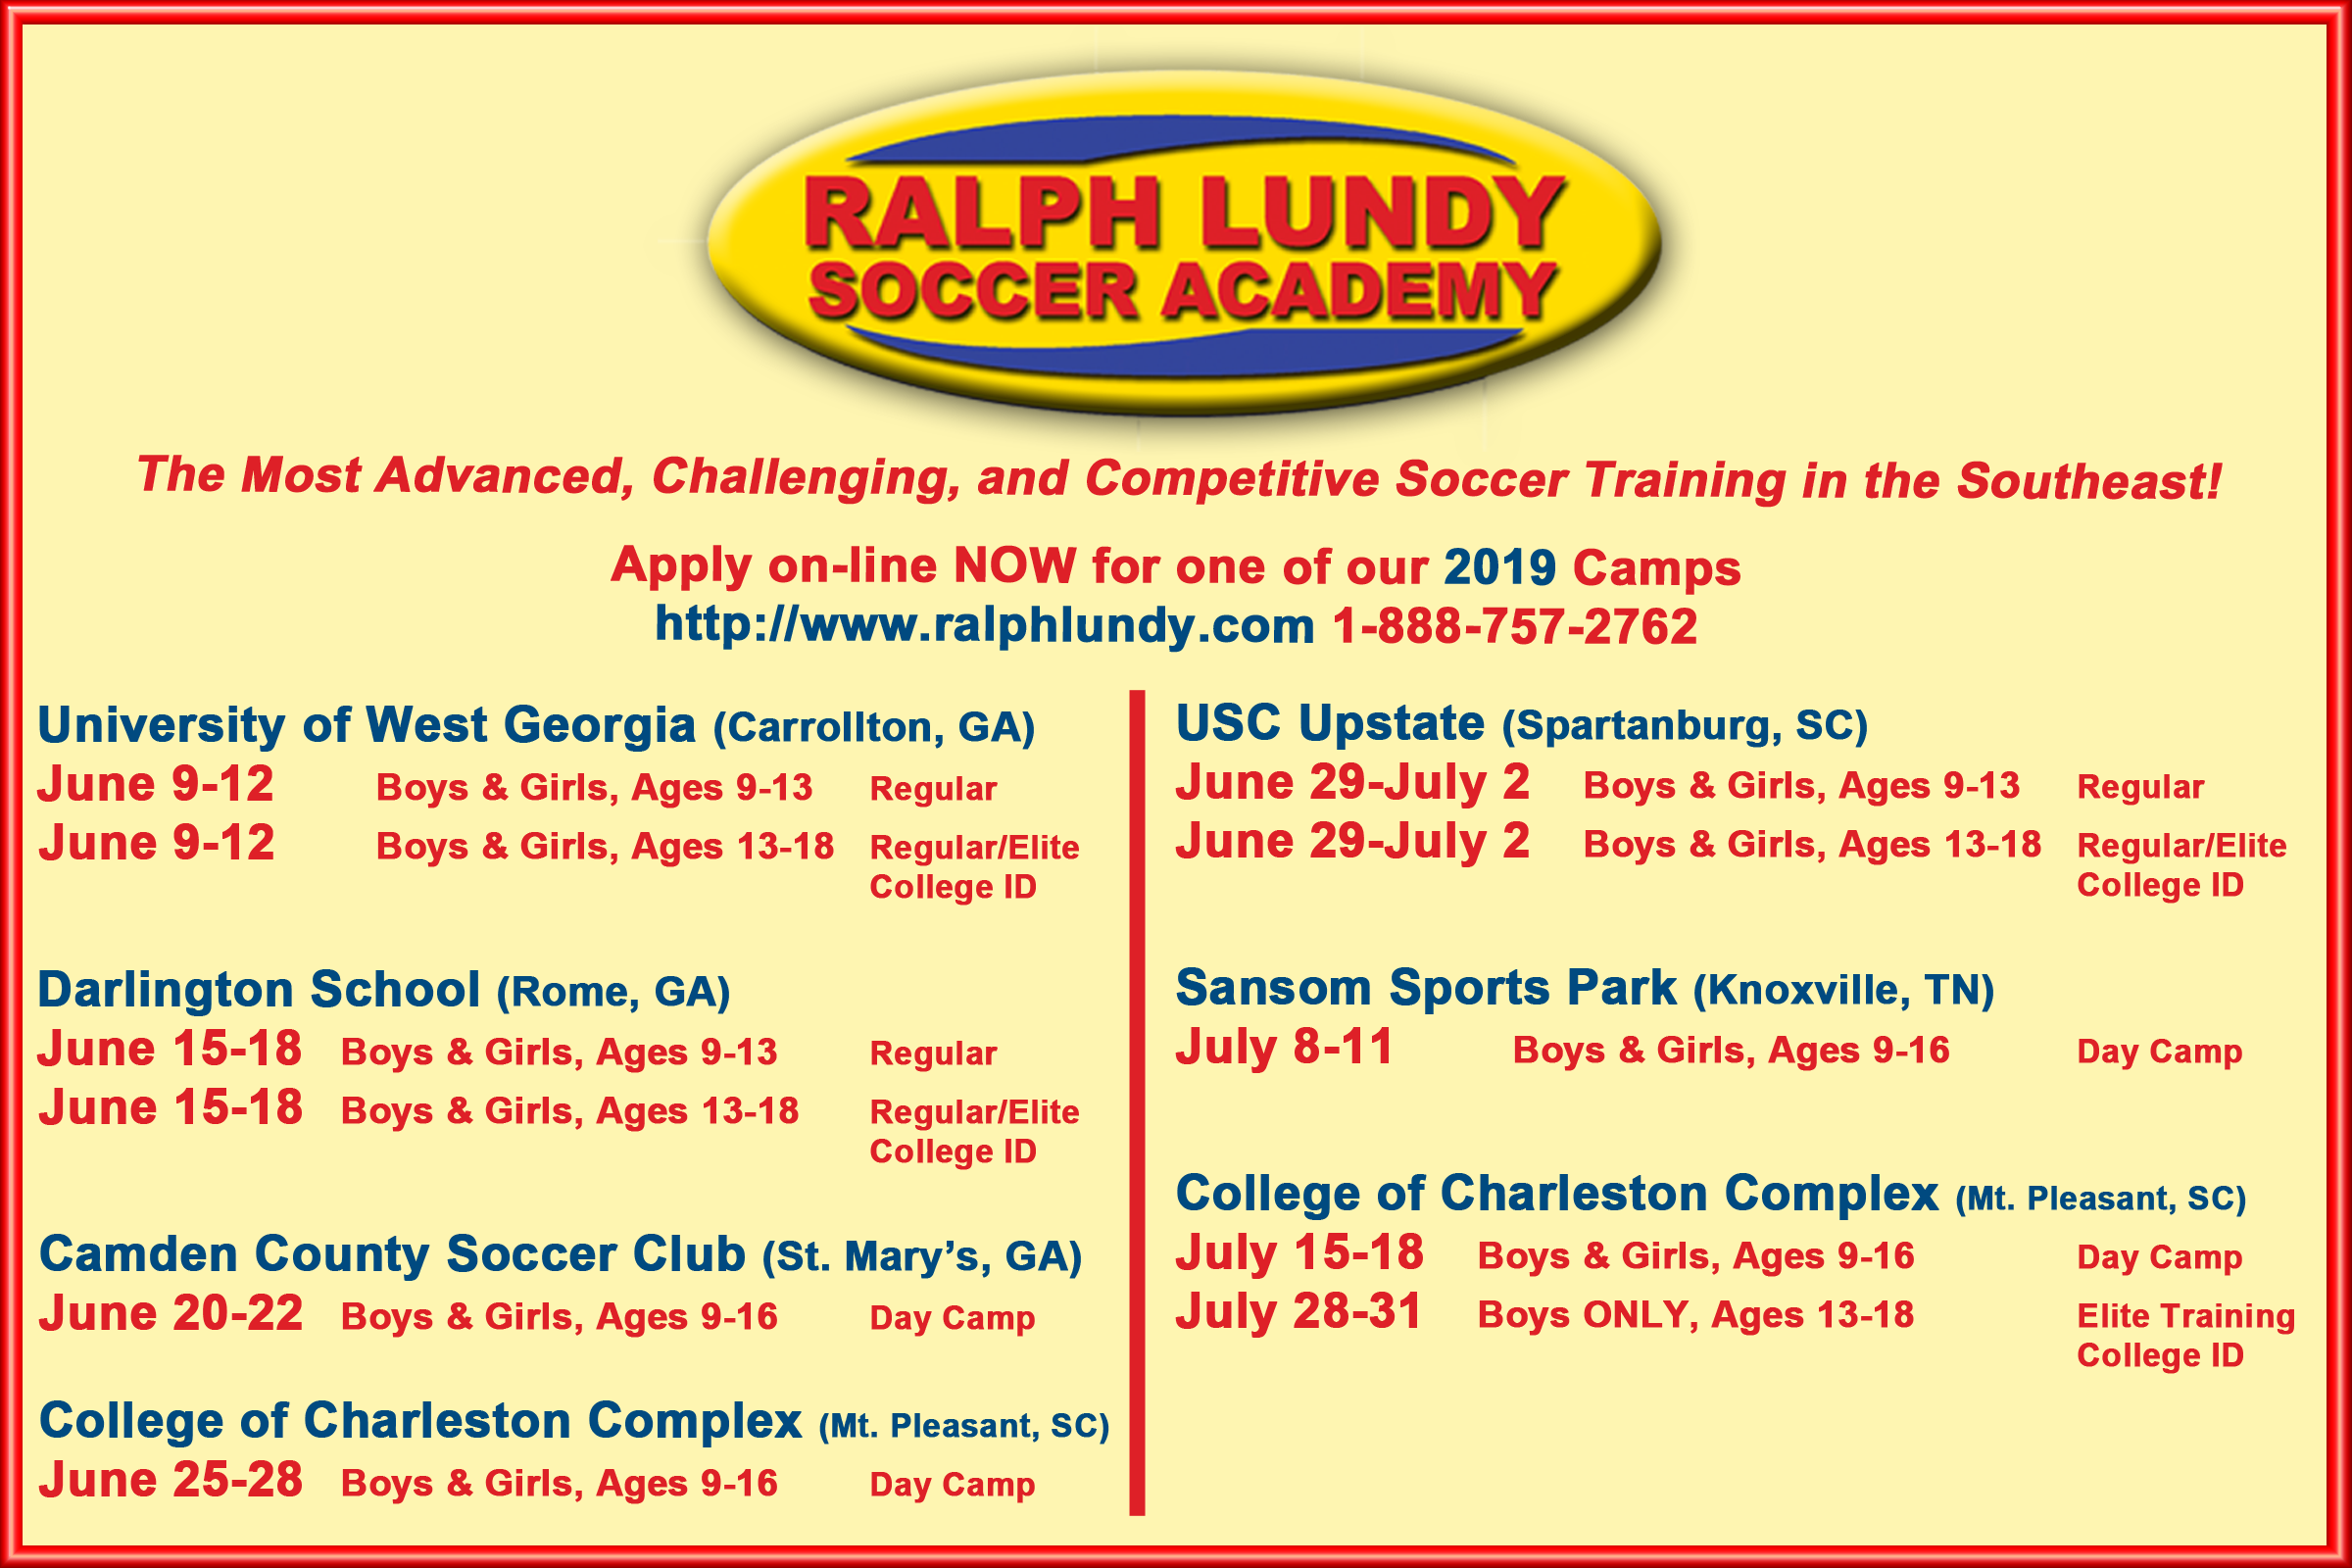 Ralph Lundy Soccer Academy - The Ralph Lundy Soccer Academy is hosting multiple camps this summer in a variety of locations. With focus on technical and tactical player development, players are sure to improve every aspect of their game while learning from some of the best collegiate coaches. For more information, click on the image!